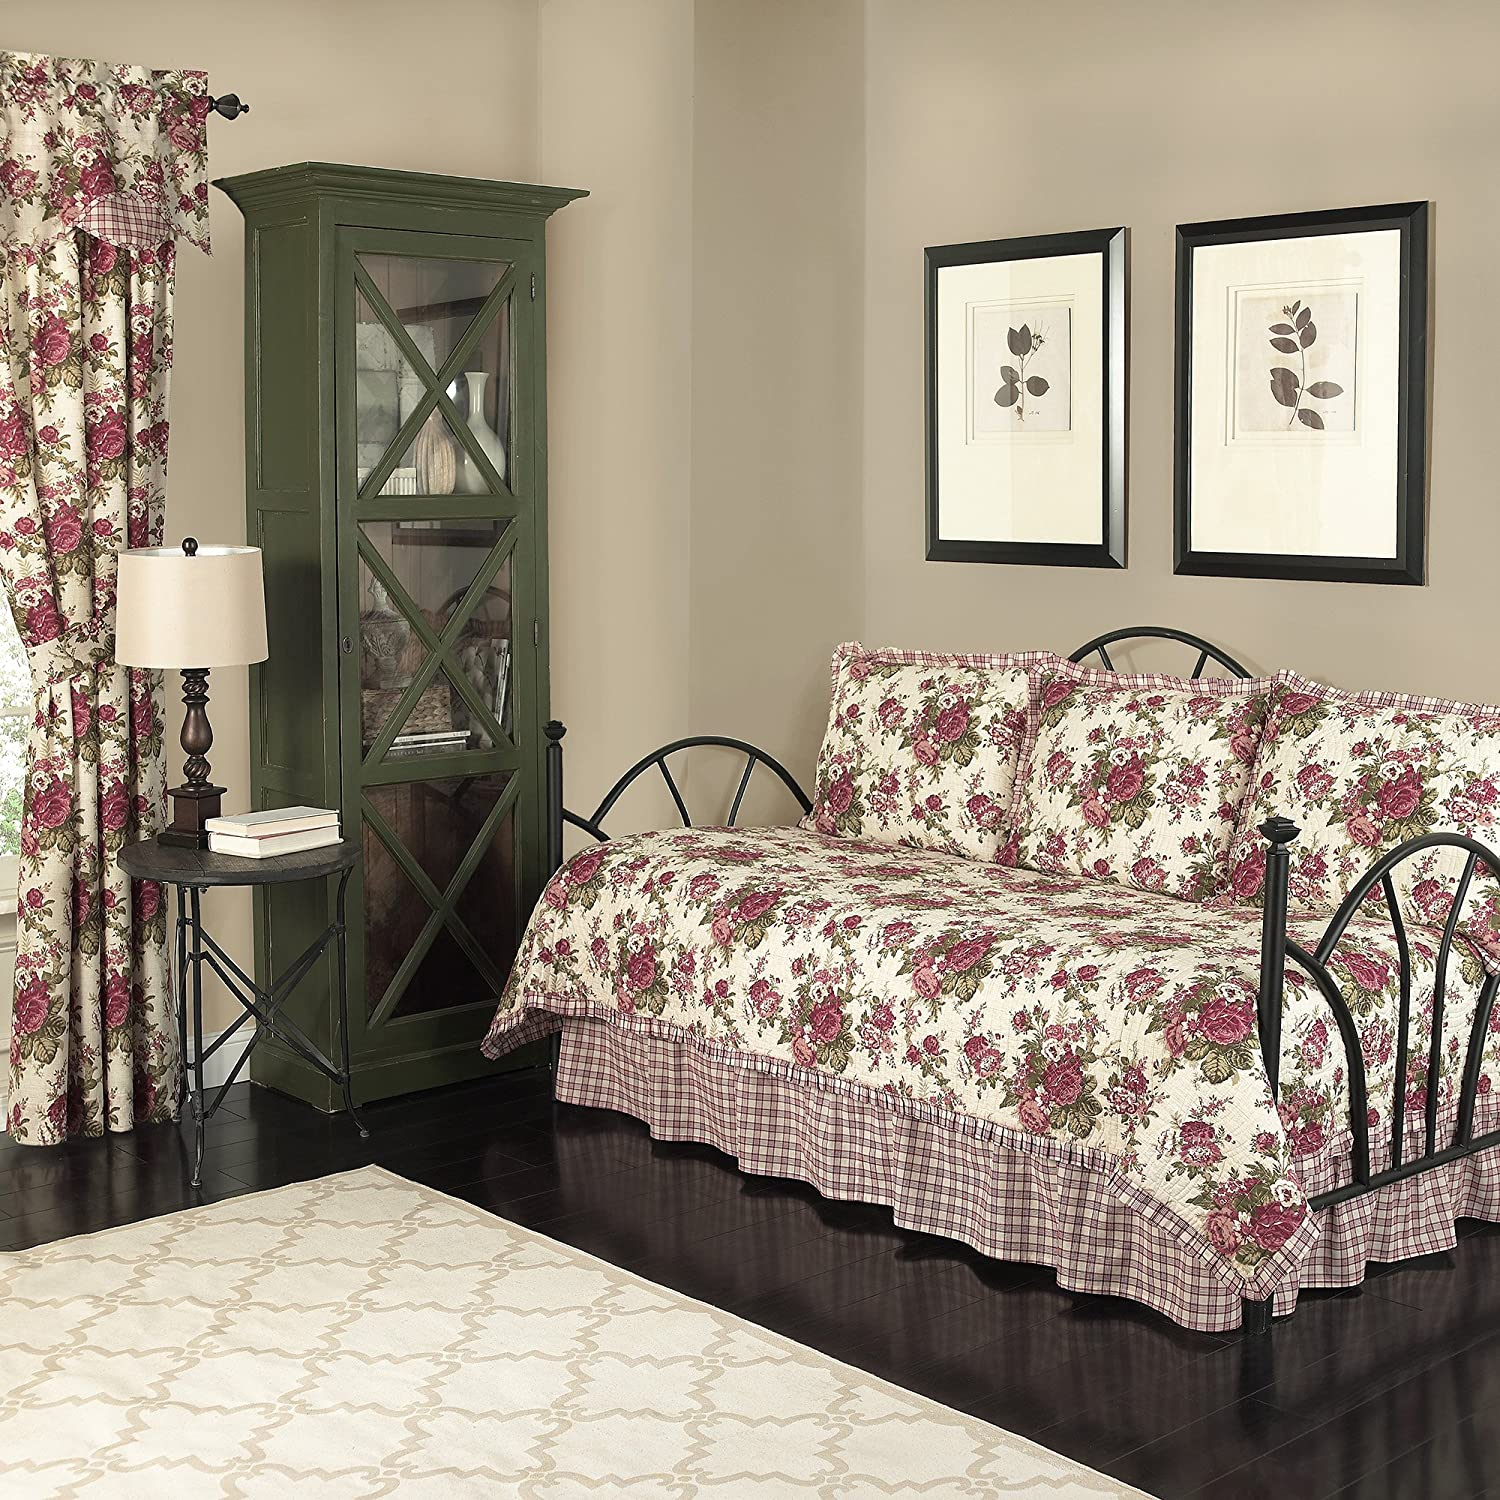 Waverly Norfolk 5-Piece Quilted Reversible Comforter Day Bed Cover Set, 105x54, Tea Stain